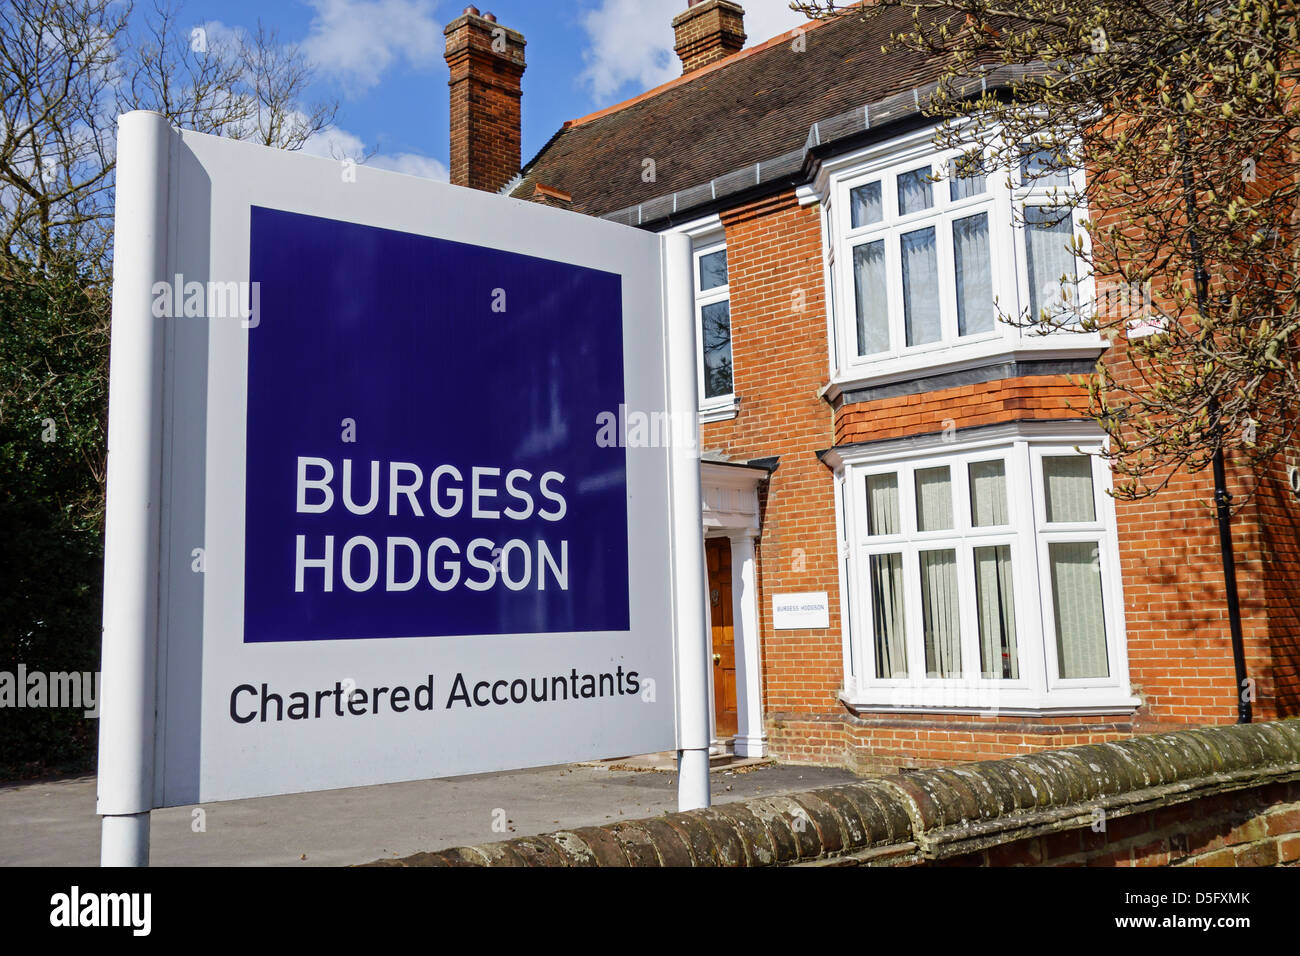 Burgess Hodgson Chartered Accountants Canterbury - Stock Image